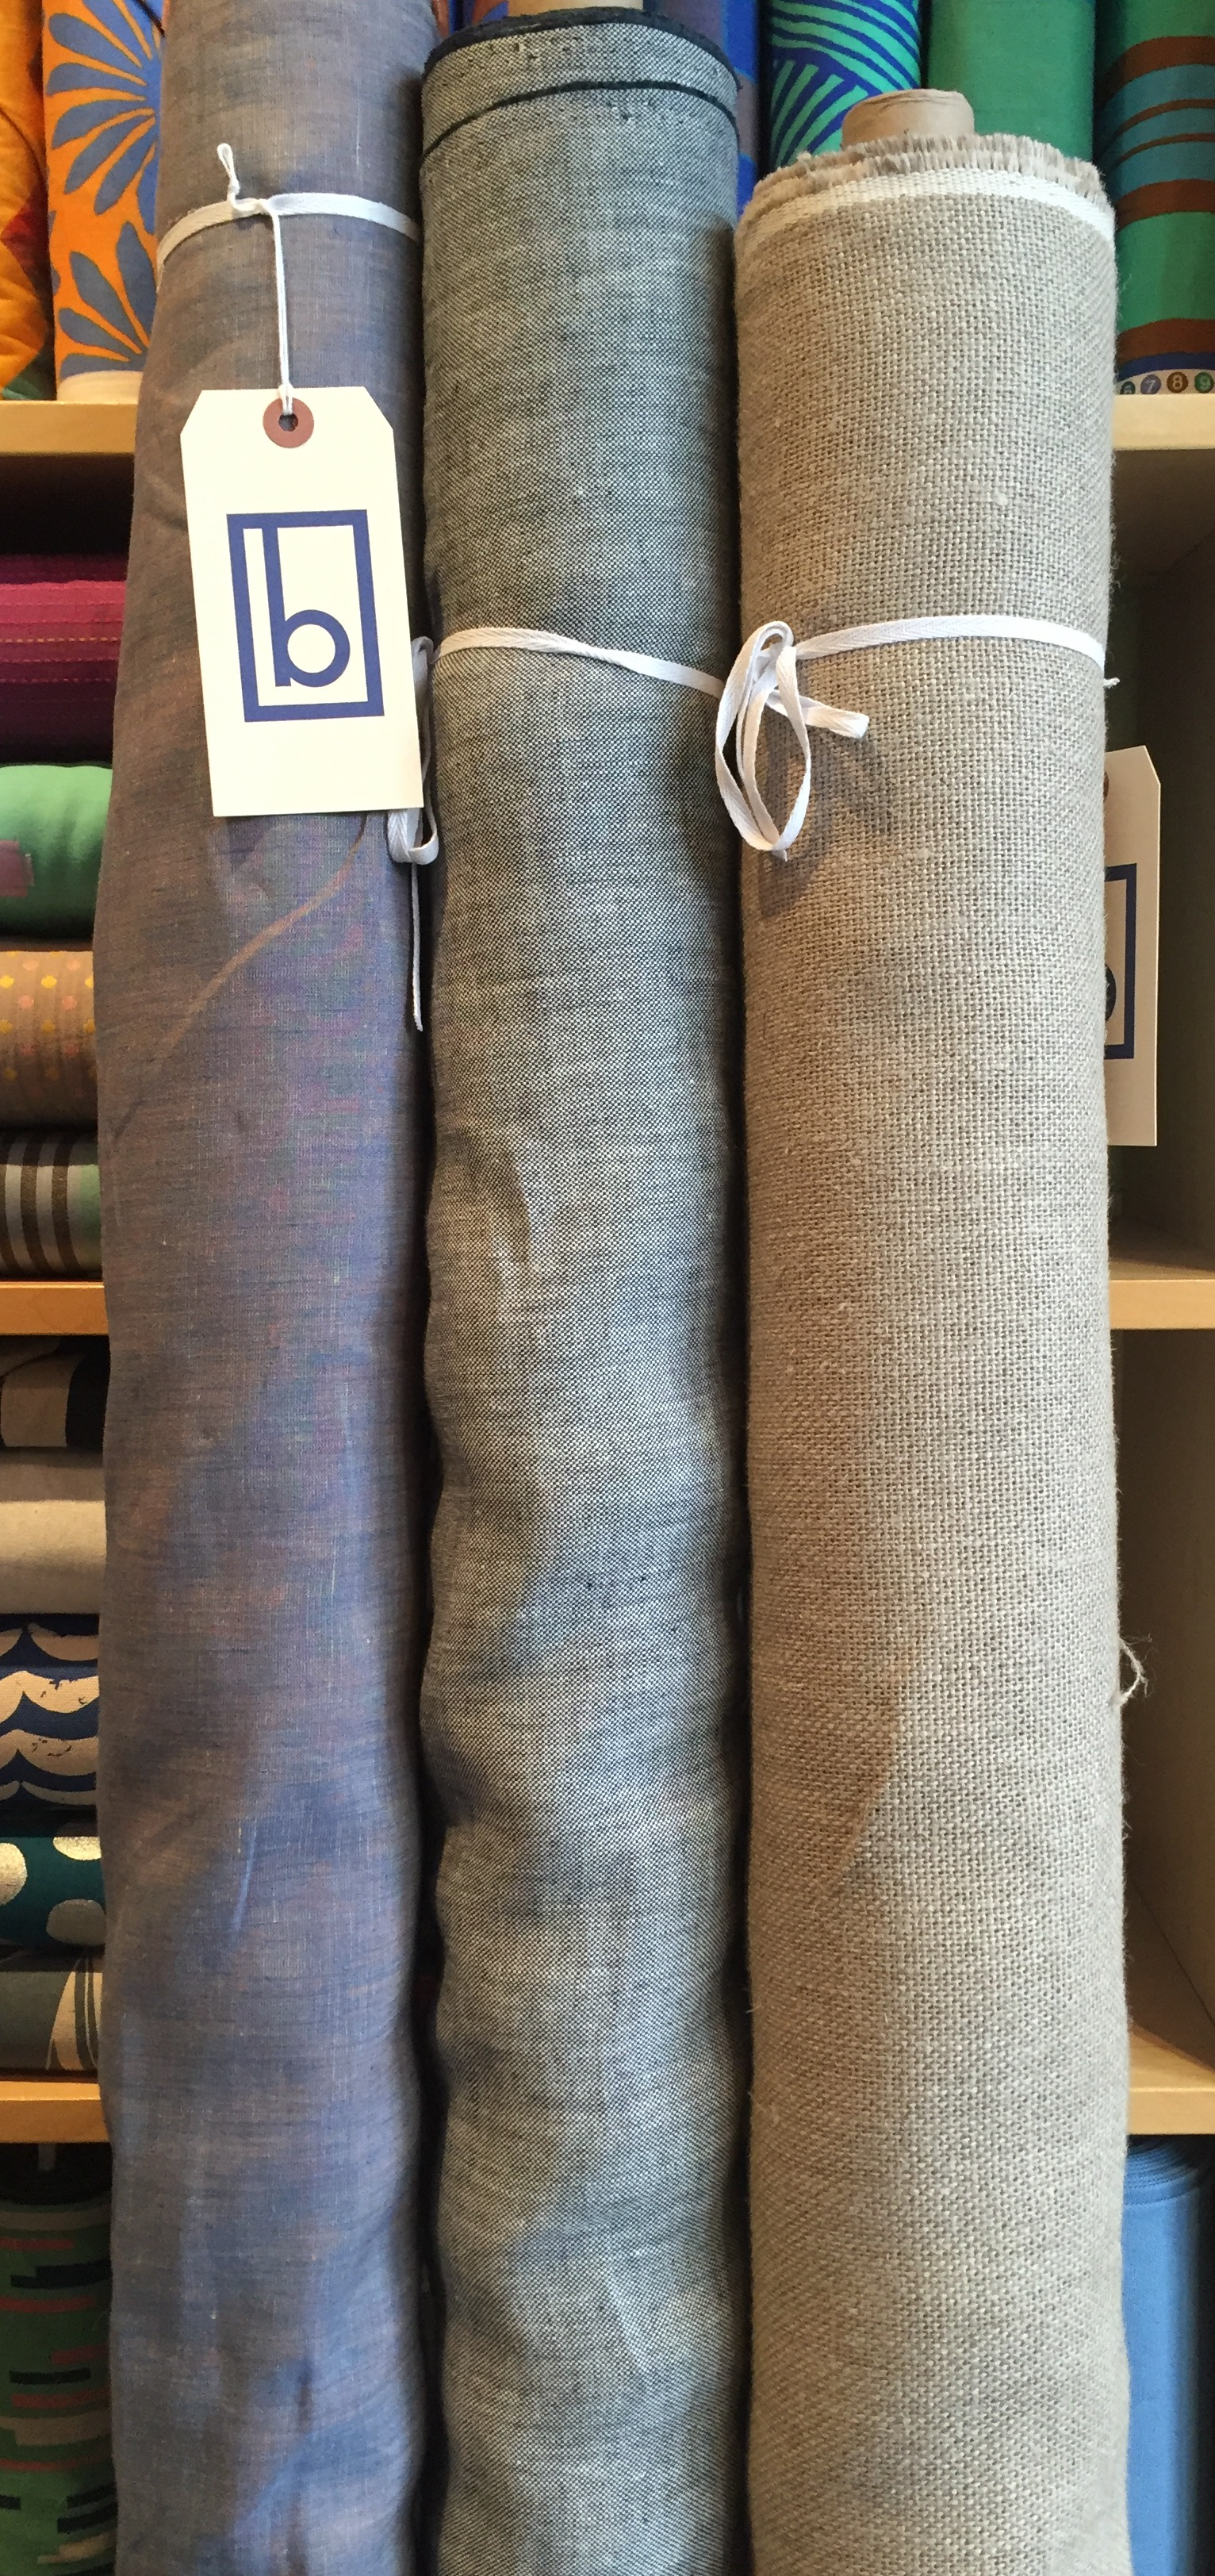 The linen burlap on the far right washes up beautifully!